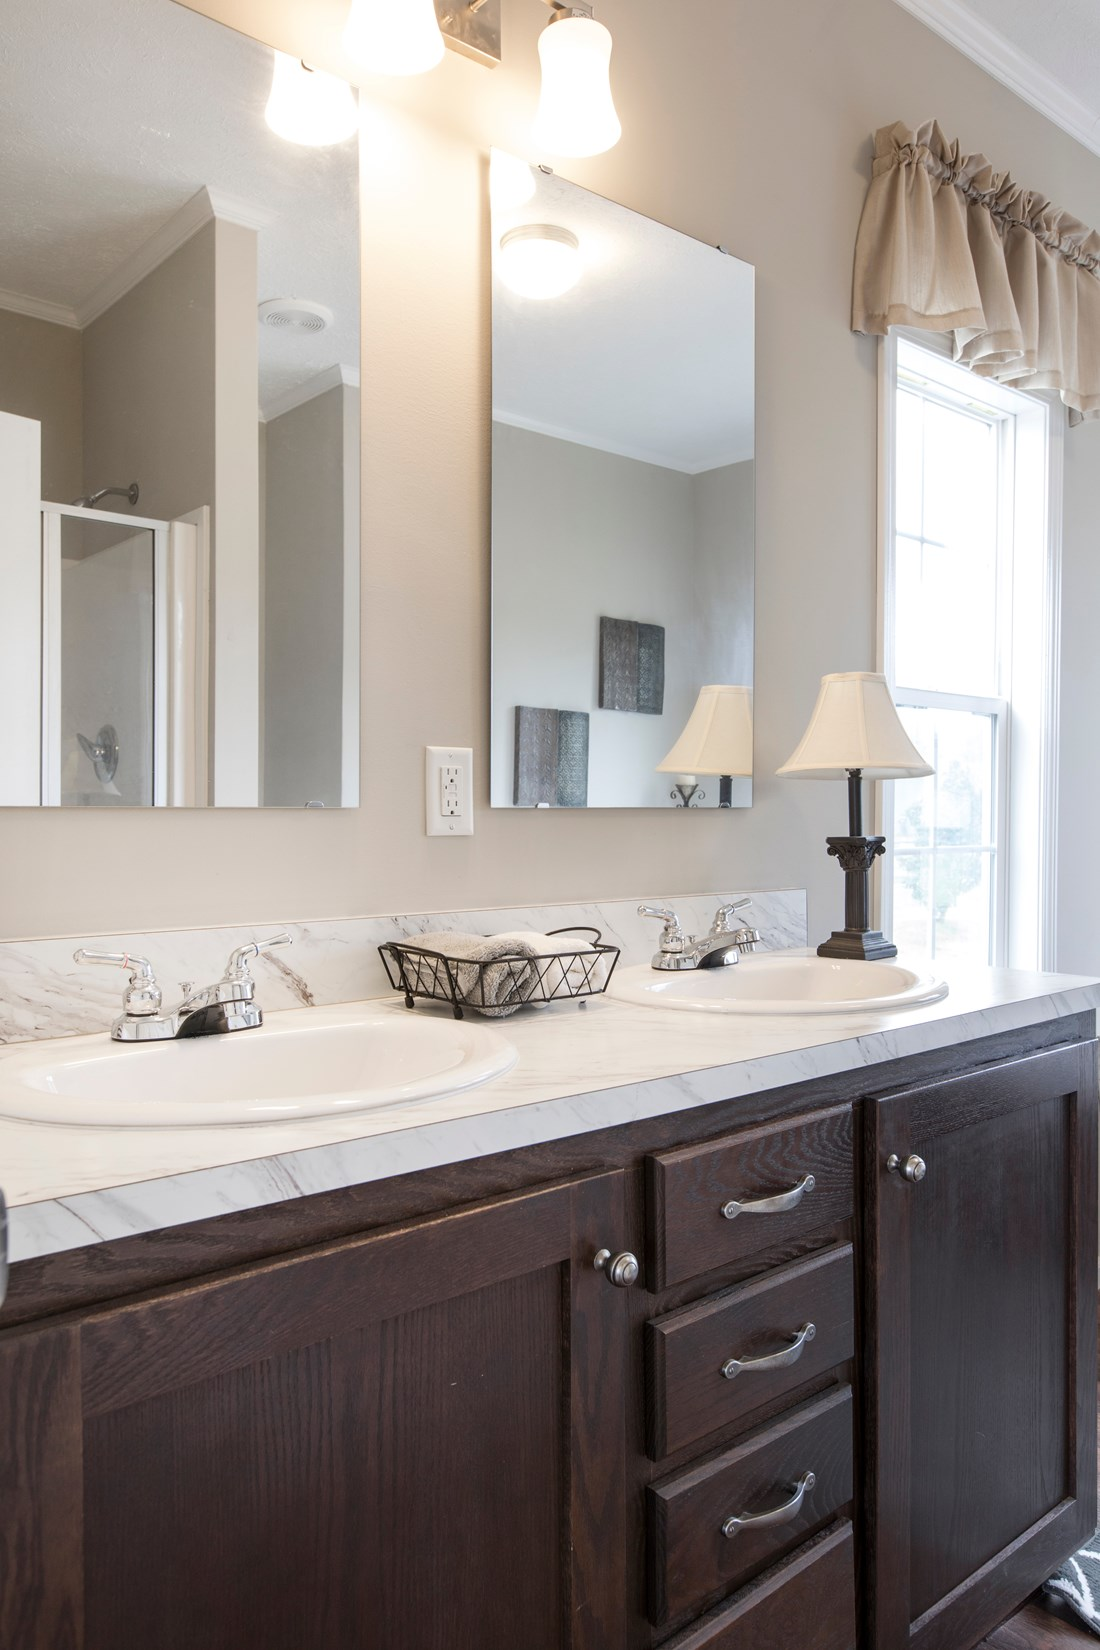 The 5582 SWEET CAROLINE Master Bathroom. This Manufactured Mobile Home features 4 bedrooms and 2 baths.